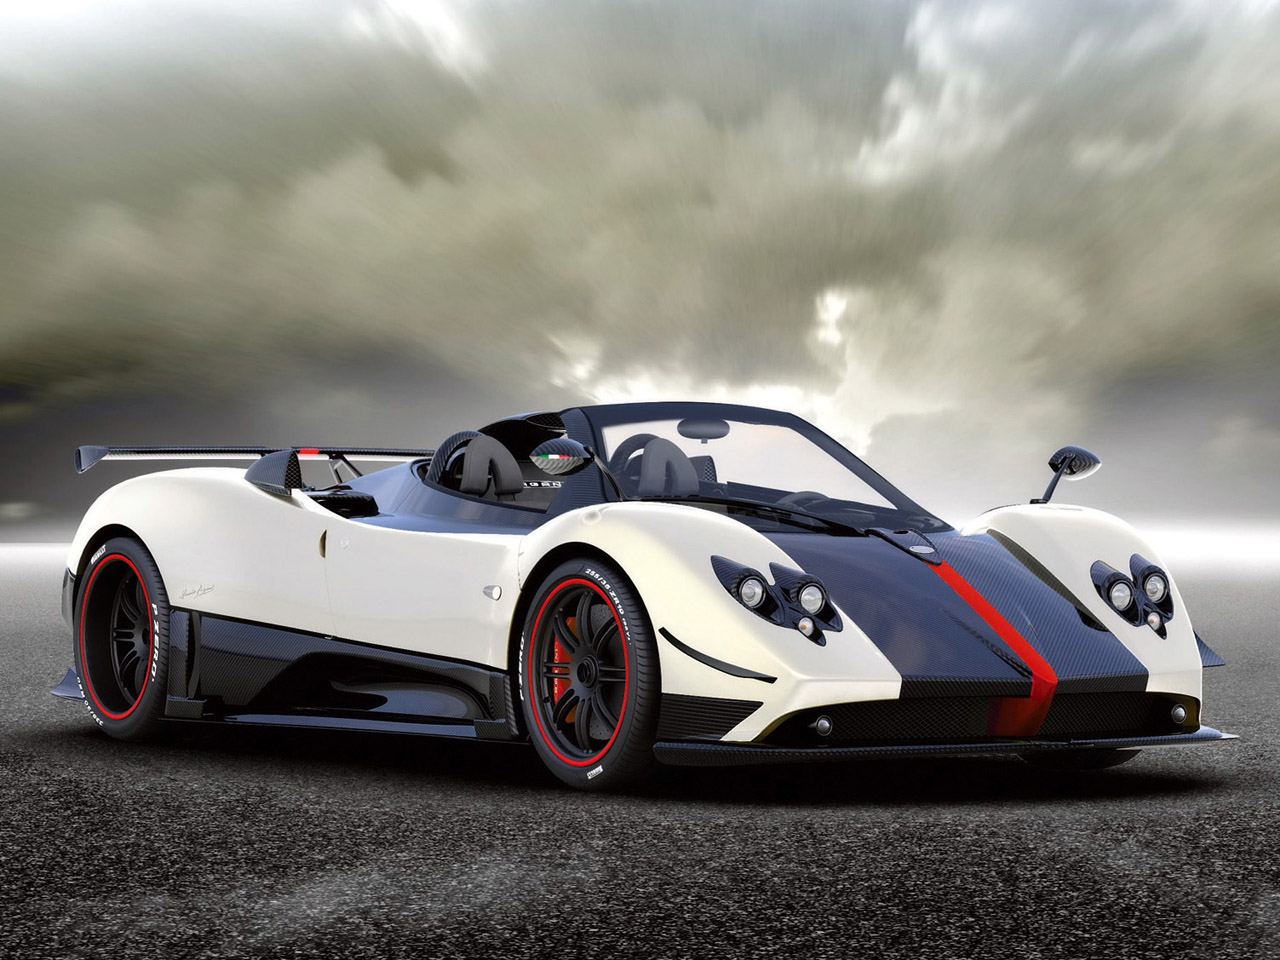 2009 Pagani Zonda Cinque Roadster Specs, Review, Price & Top Speed